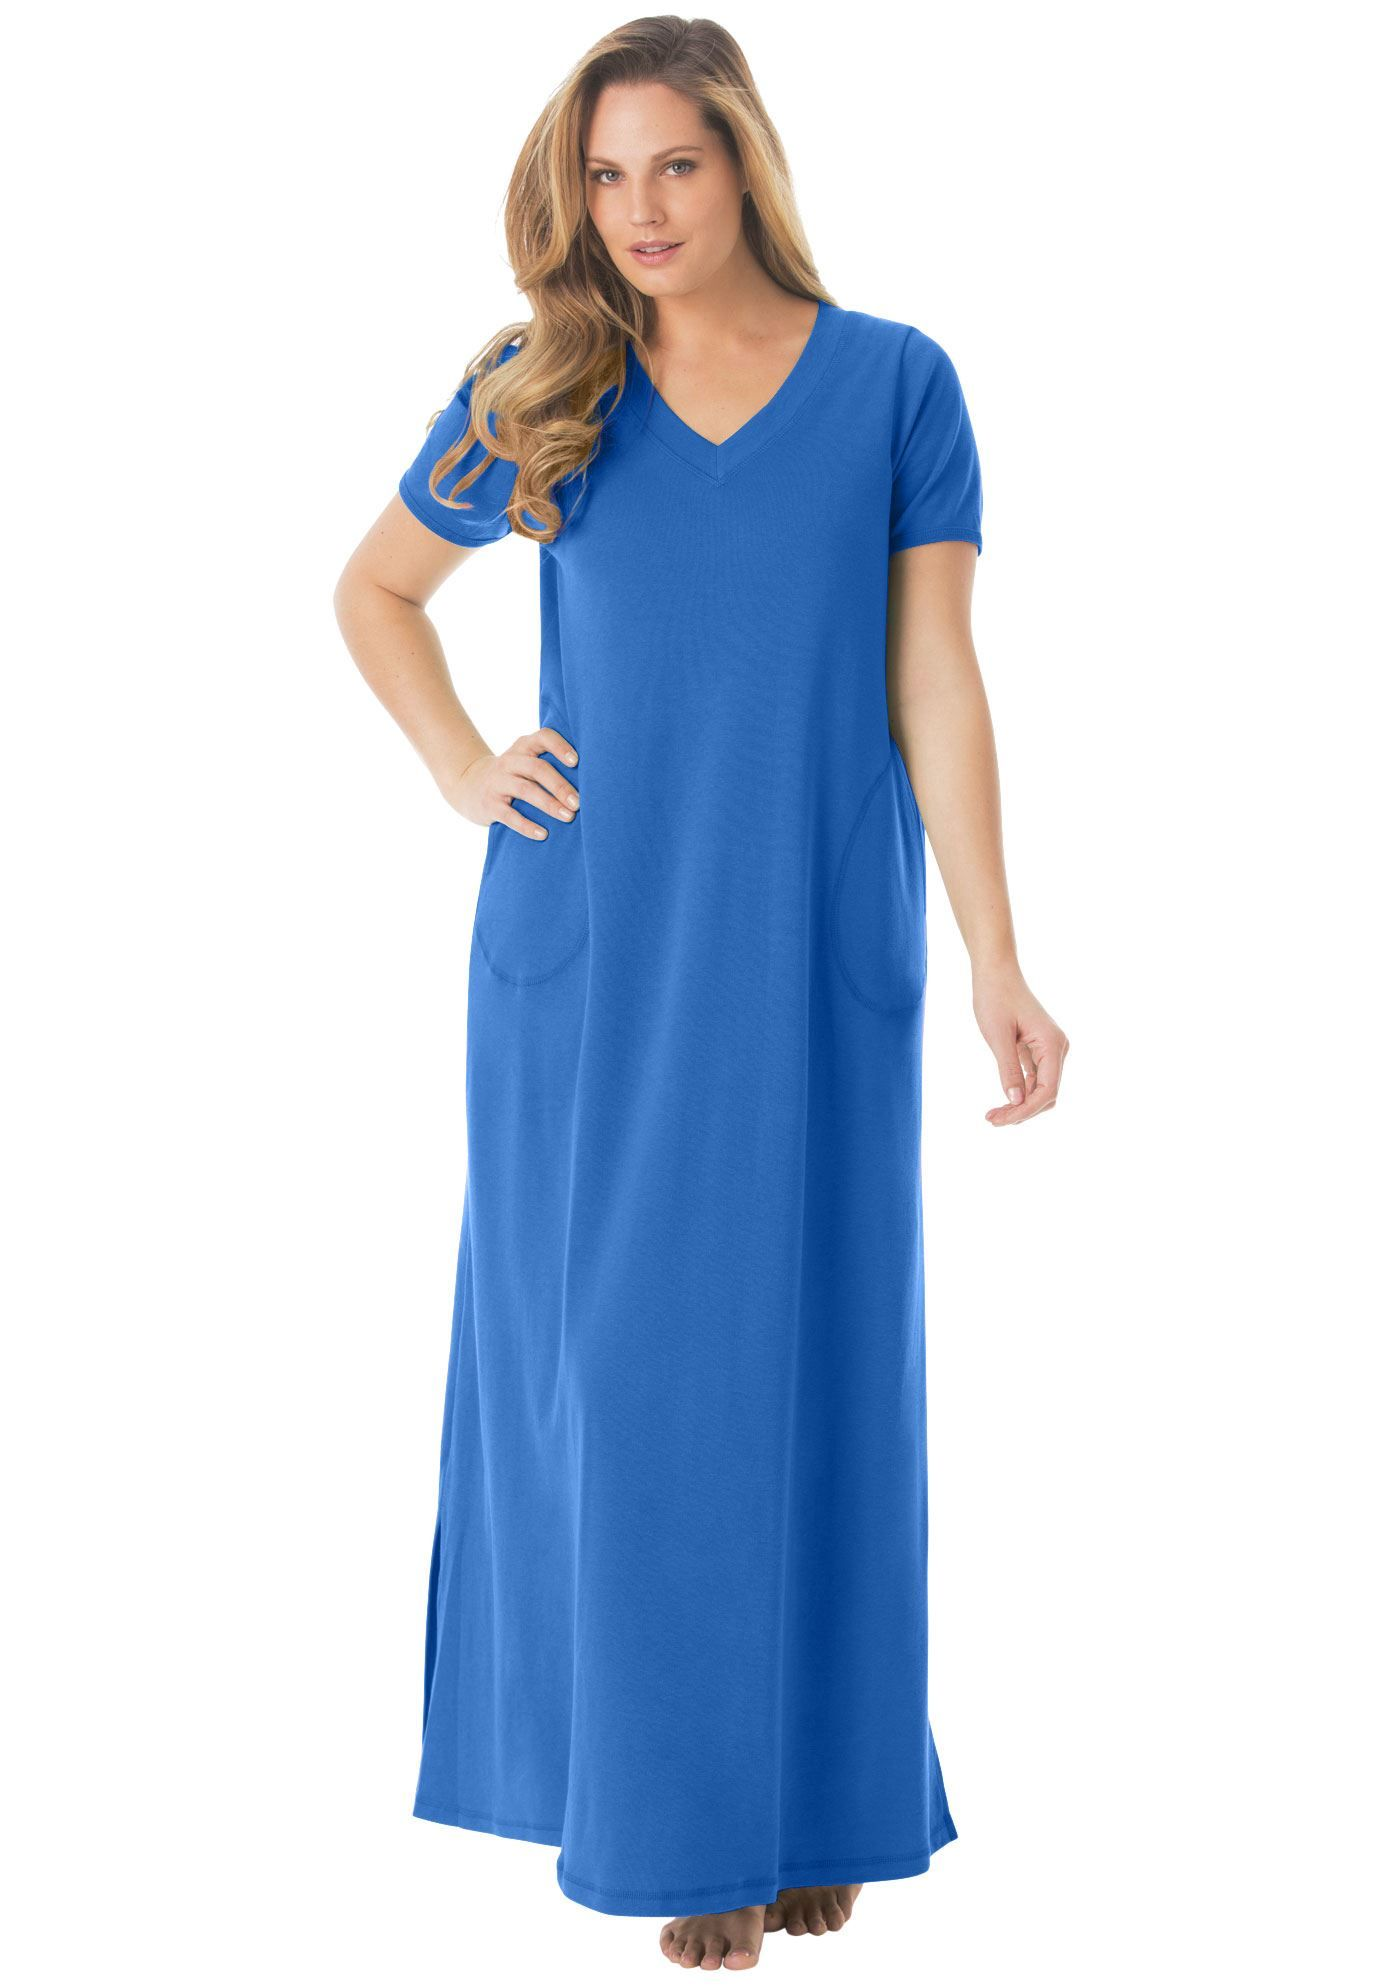 Plus Size Silhouette Dress at GetDrawings.com | Free for ...